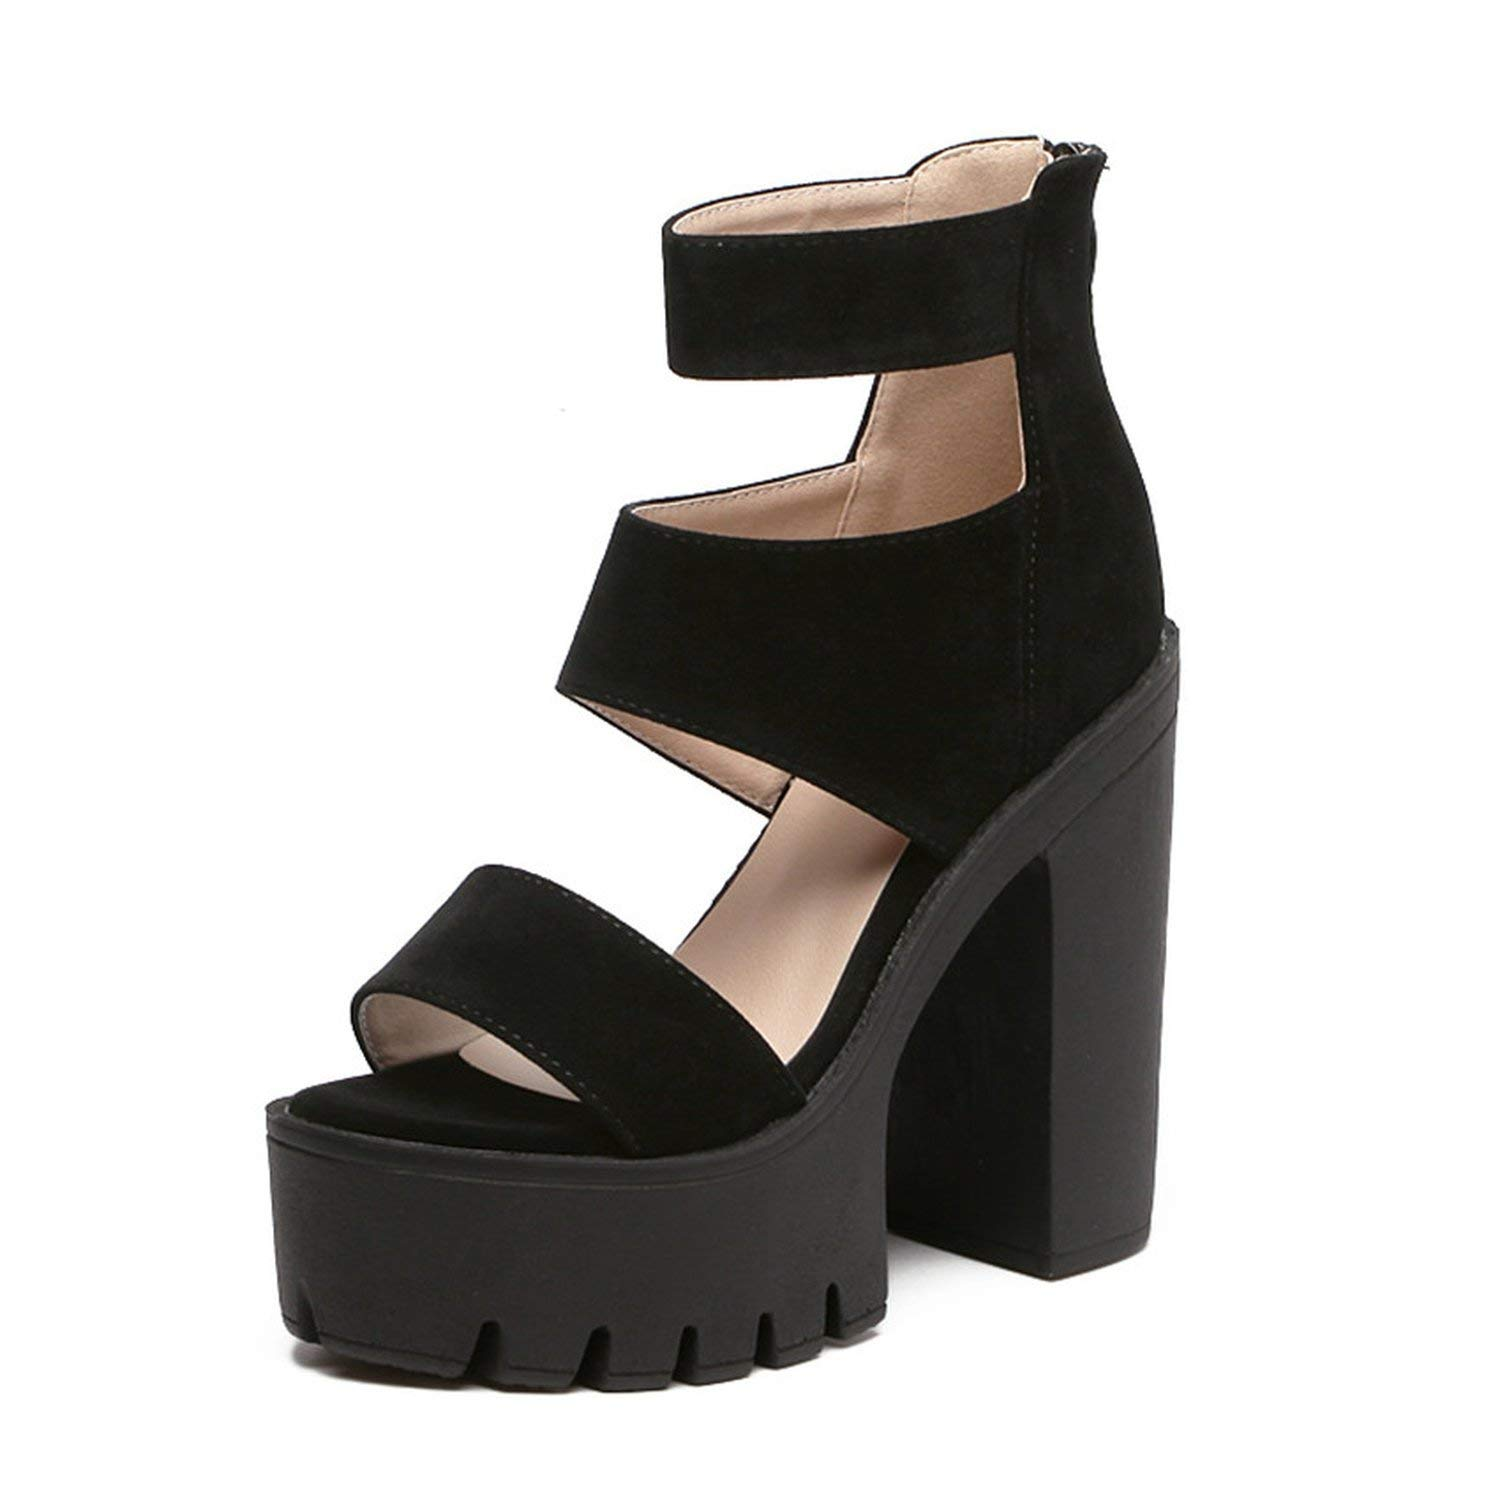 Romantic moments Women Sandals Fashion Summer Gladiator Casual Cut-Outs Open Toe Thick Heels 13cm Gladiator